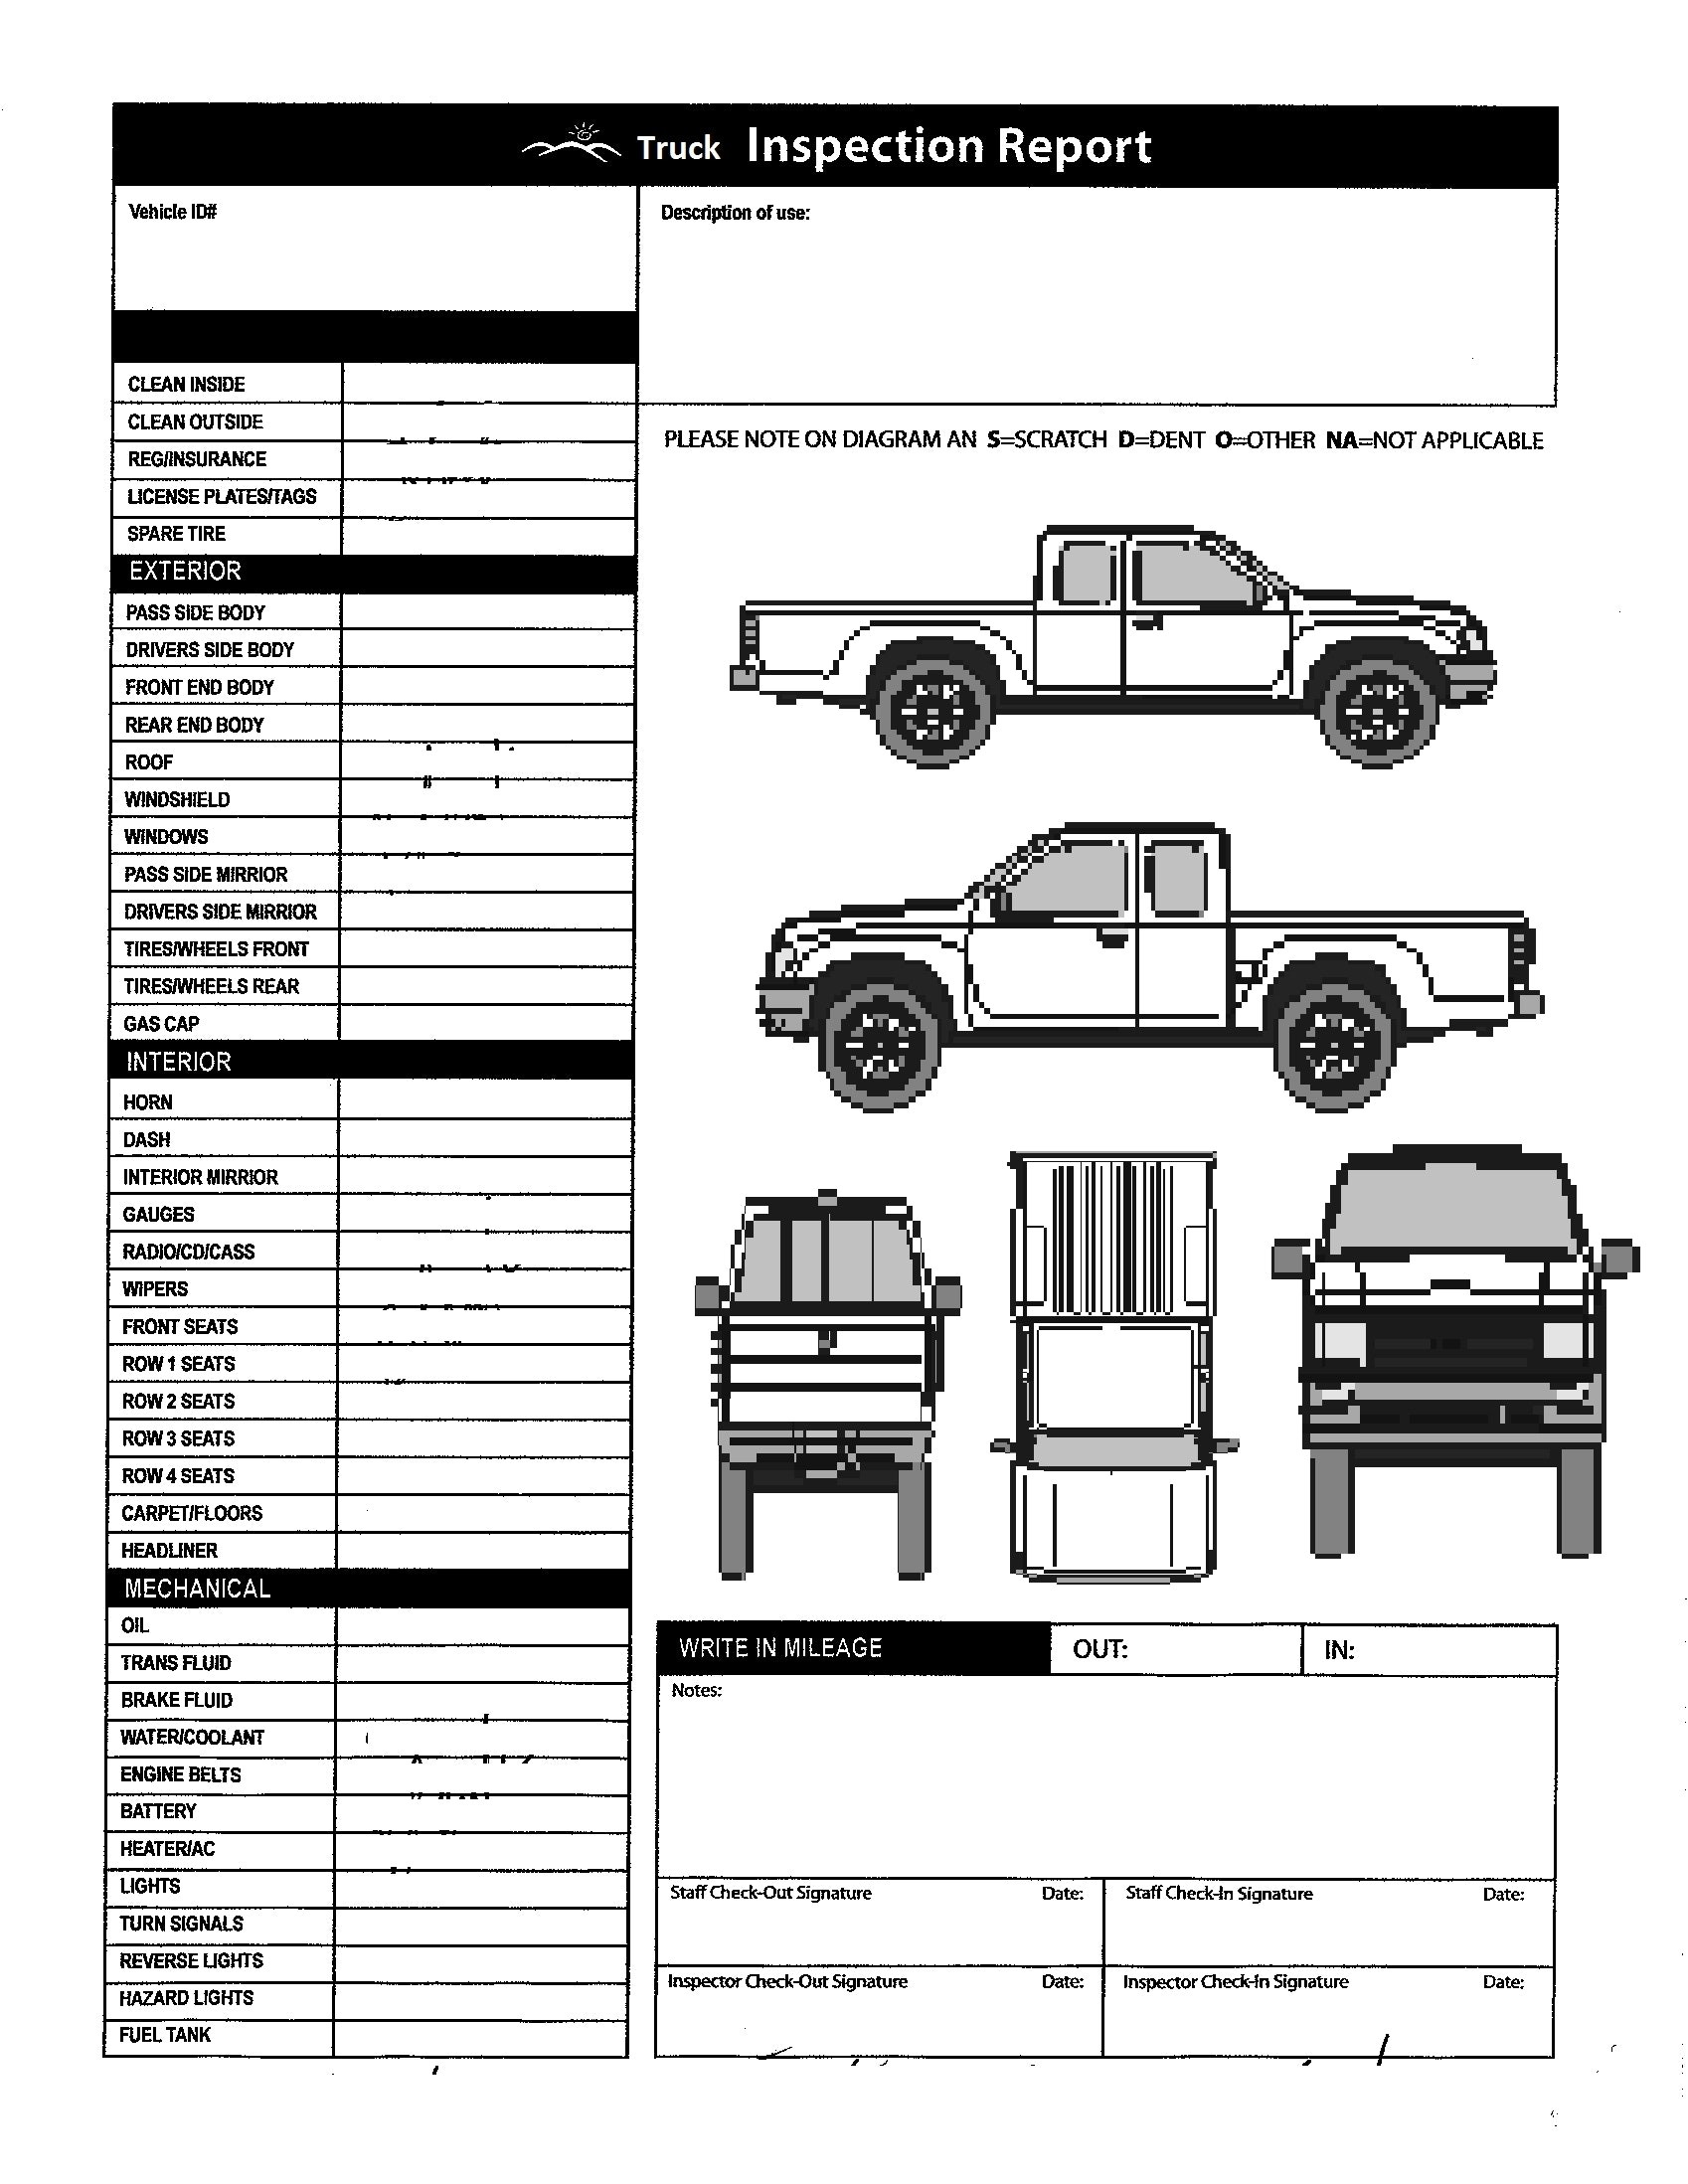 Pickup Truck Inspection Diagram Free Printable Vehicle Inspection form Of Pickup Truck Inspection Diagram